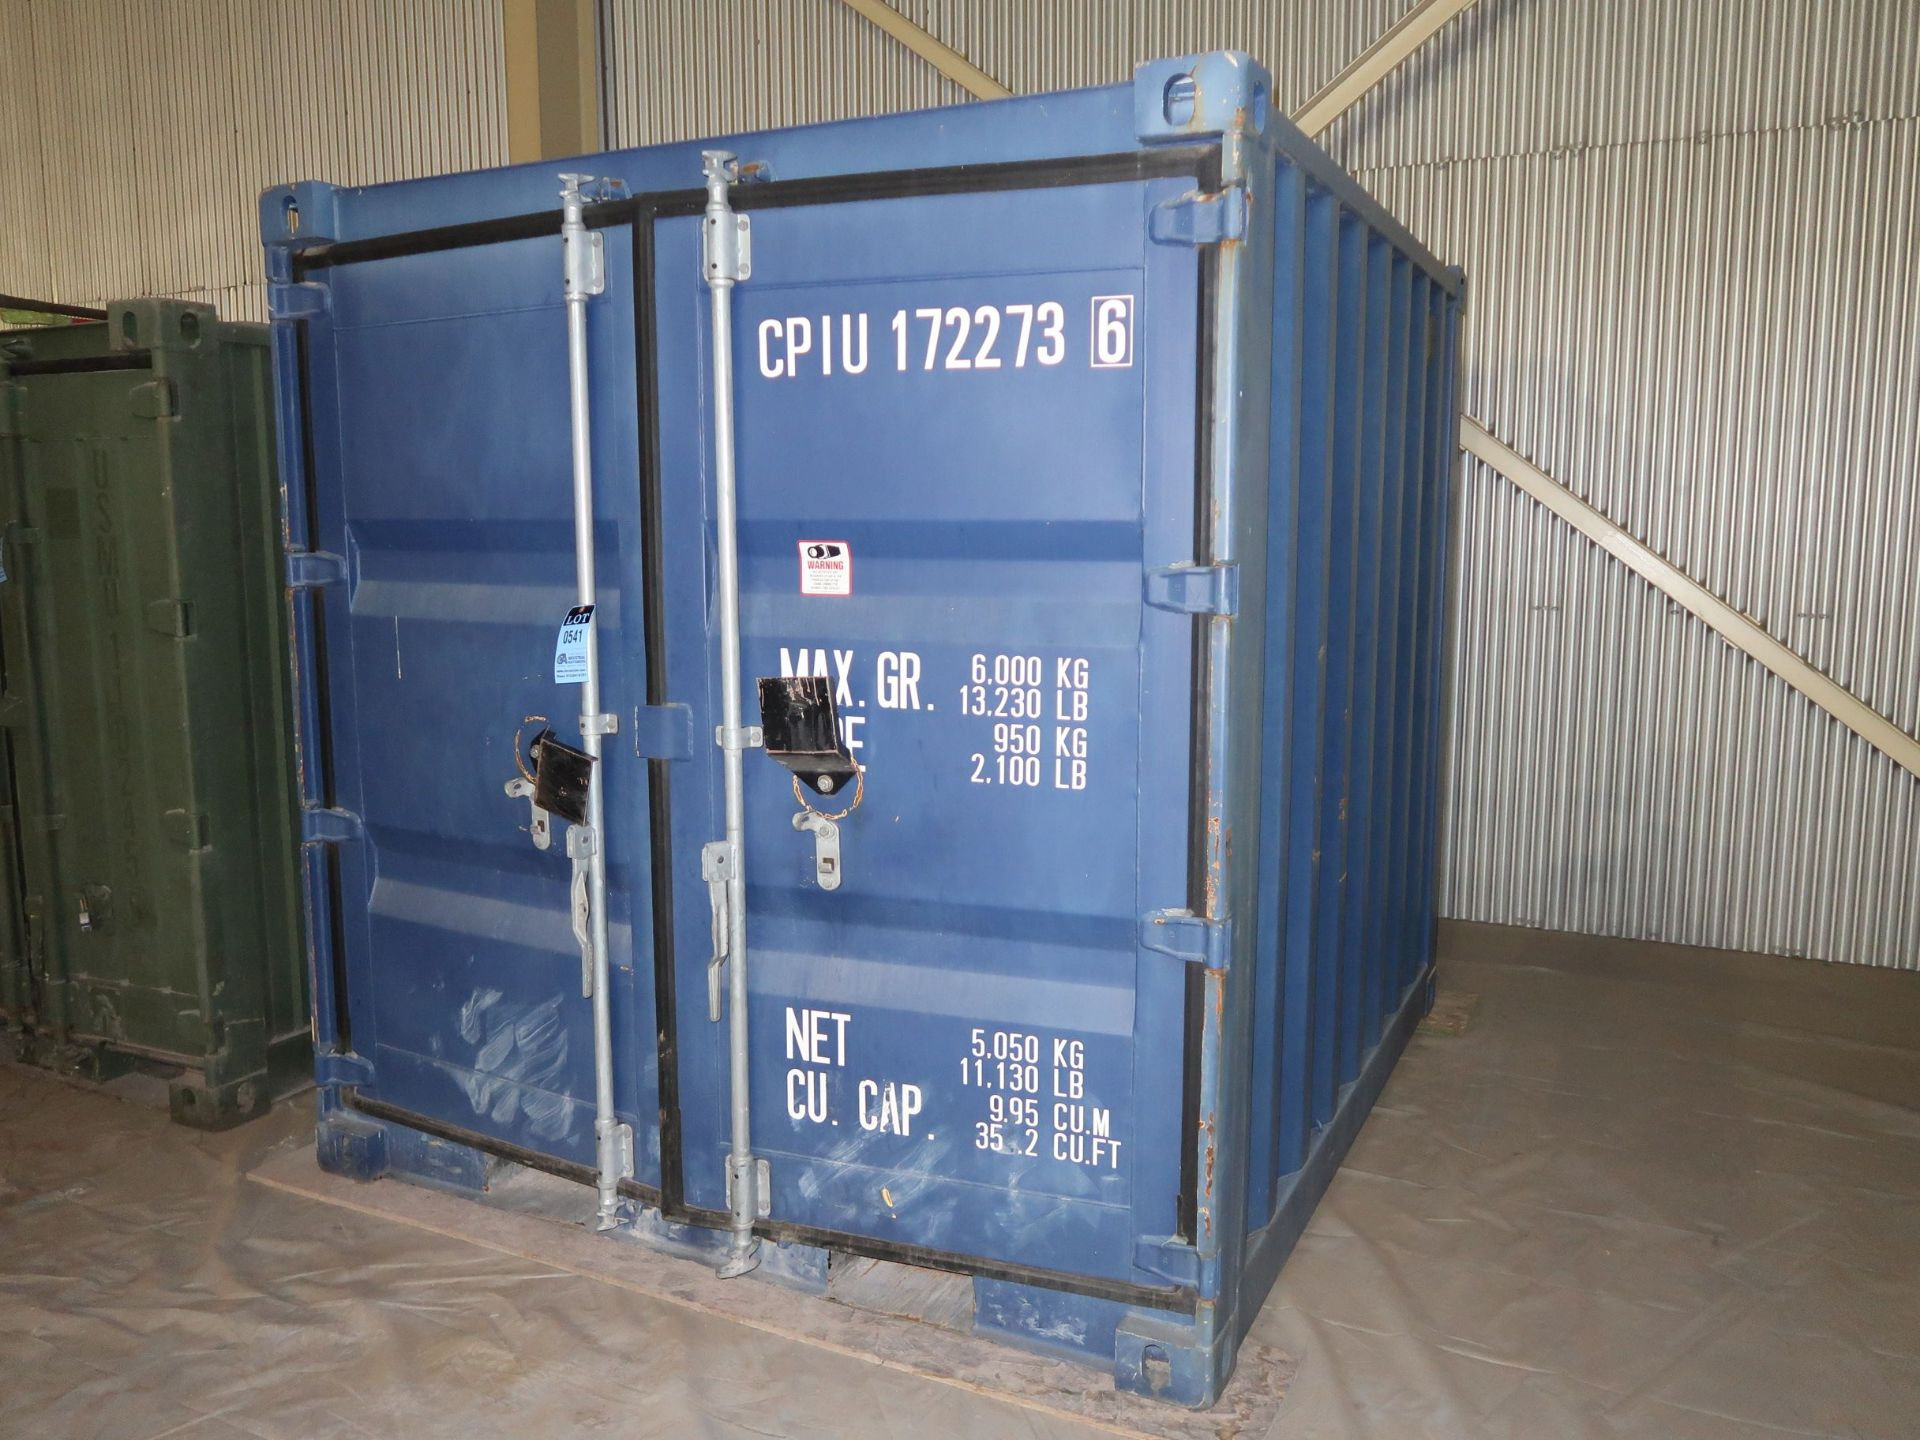 Lot 541 - 7' WIDE X 8' LONG CONEX STORAGE CONTAINER, 351 CUBIC FEET WITH STANDARD DOOR